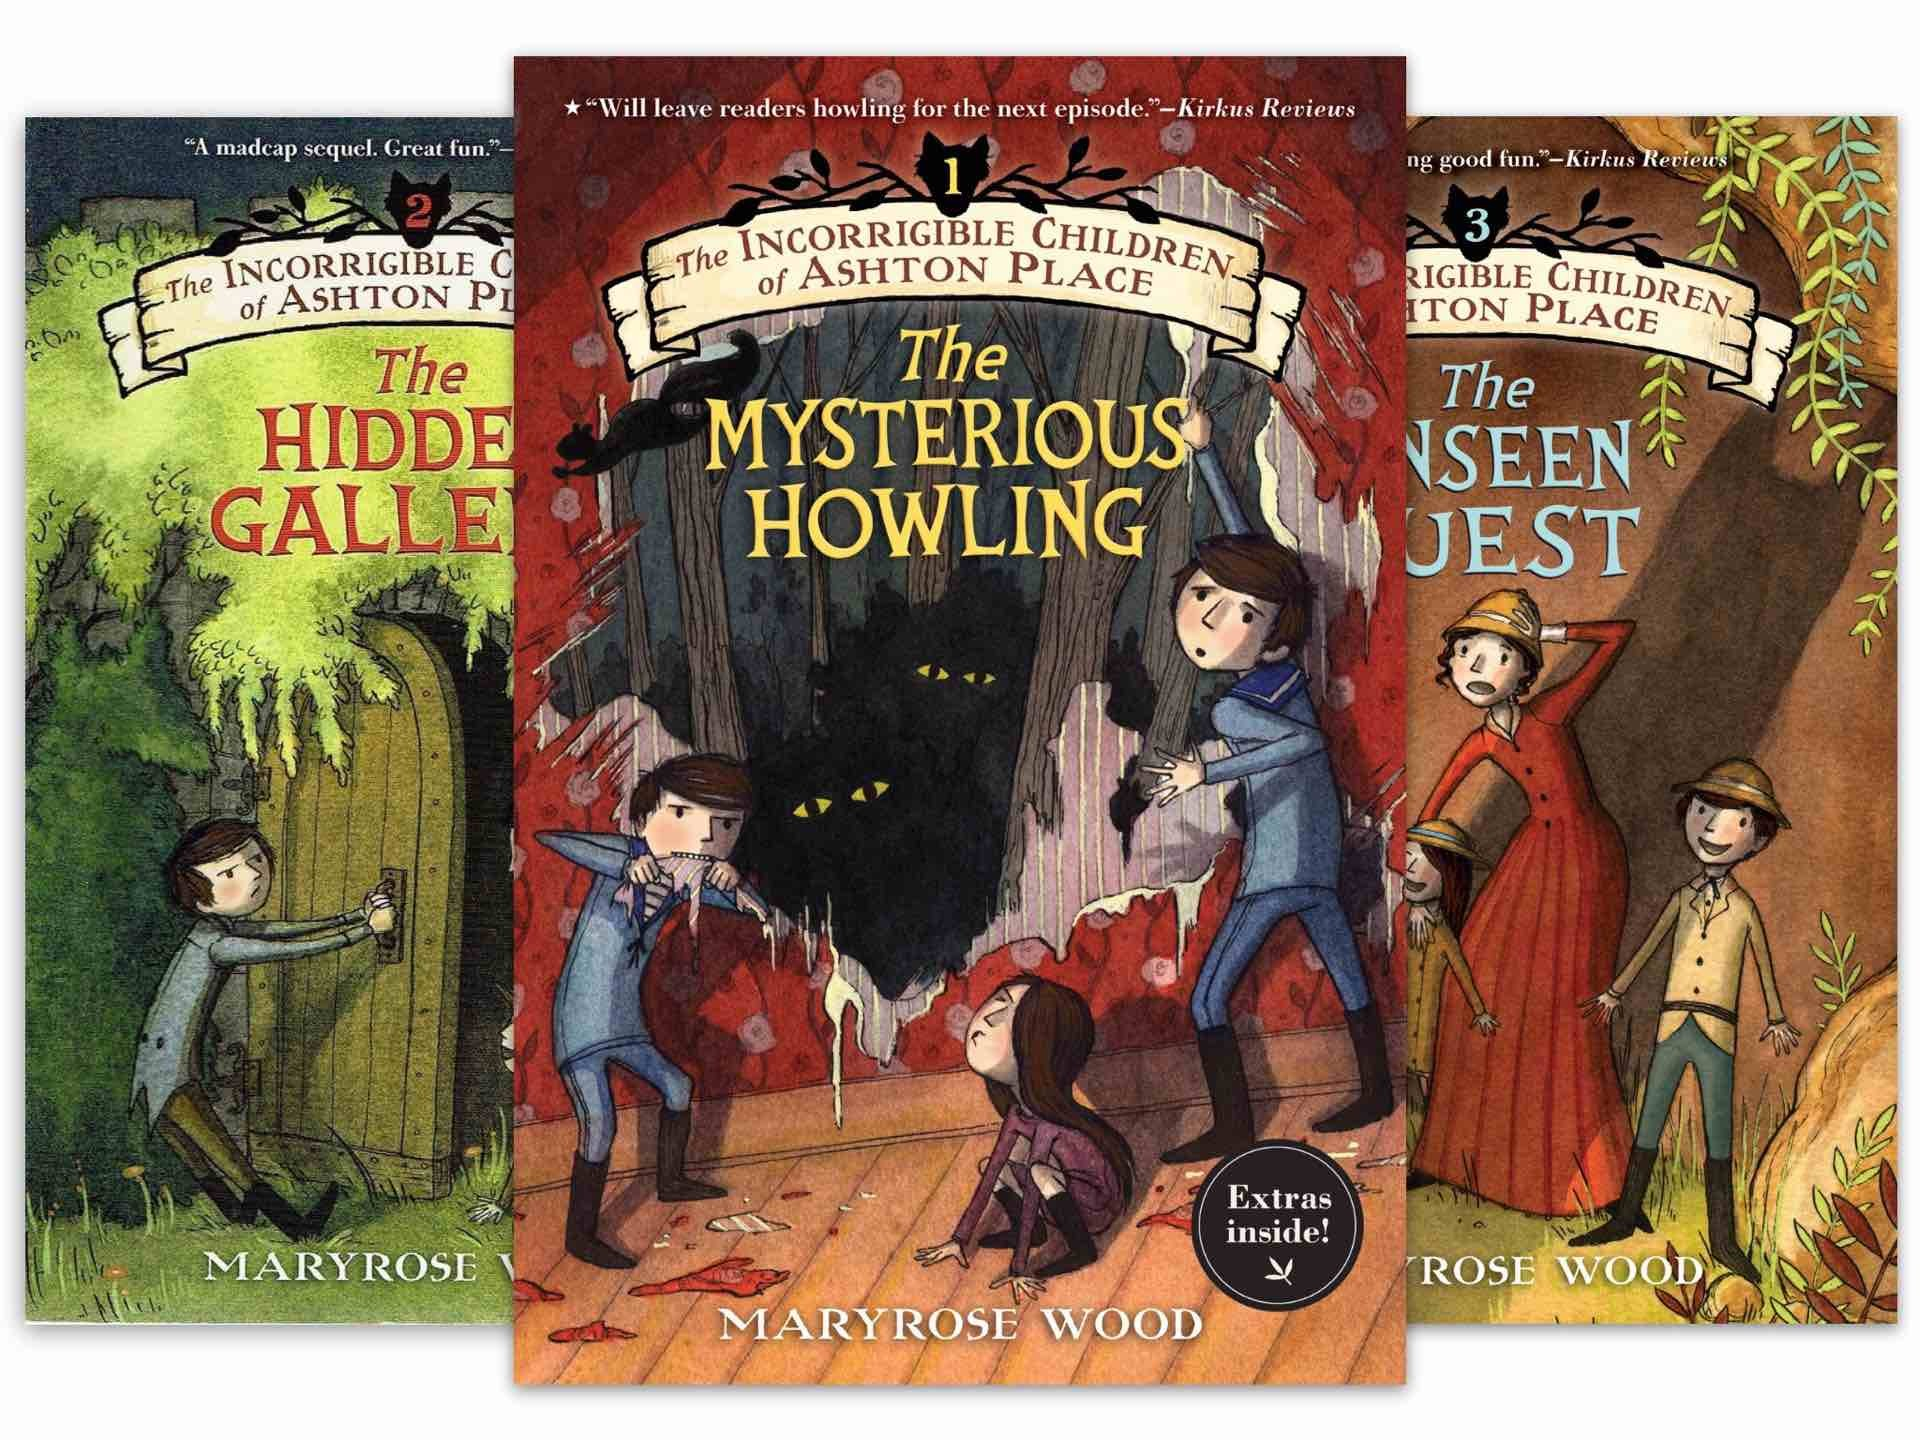 The Incorrigible Children of Ashton Place series by Maryrose Wood.